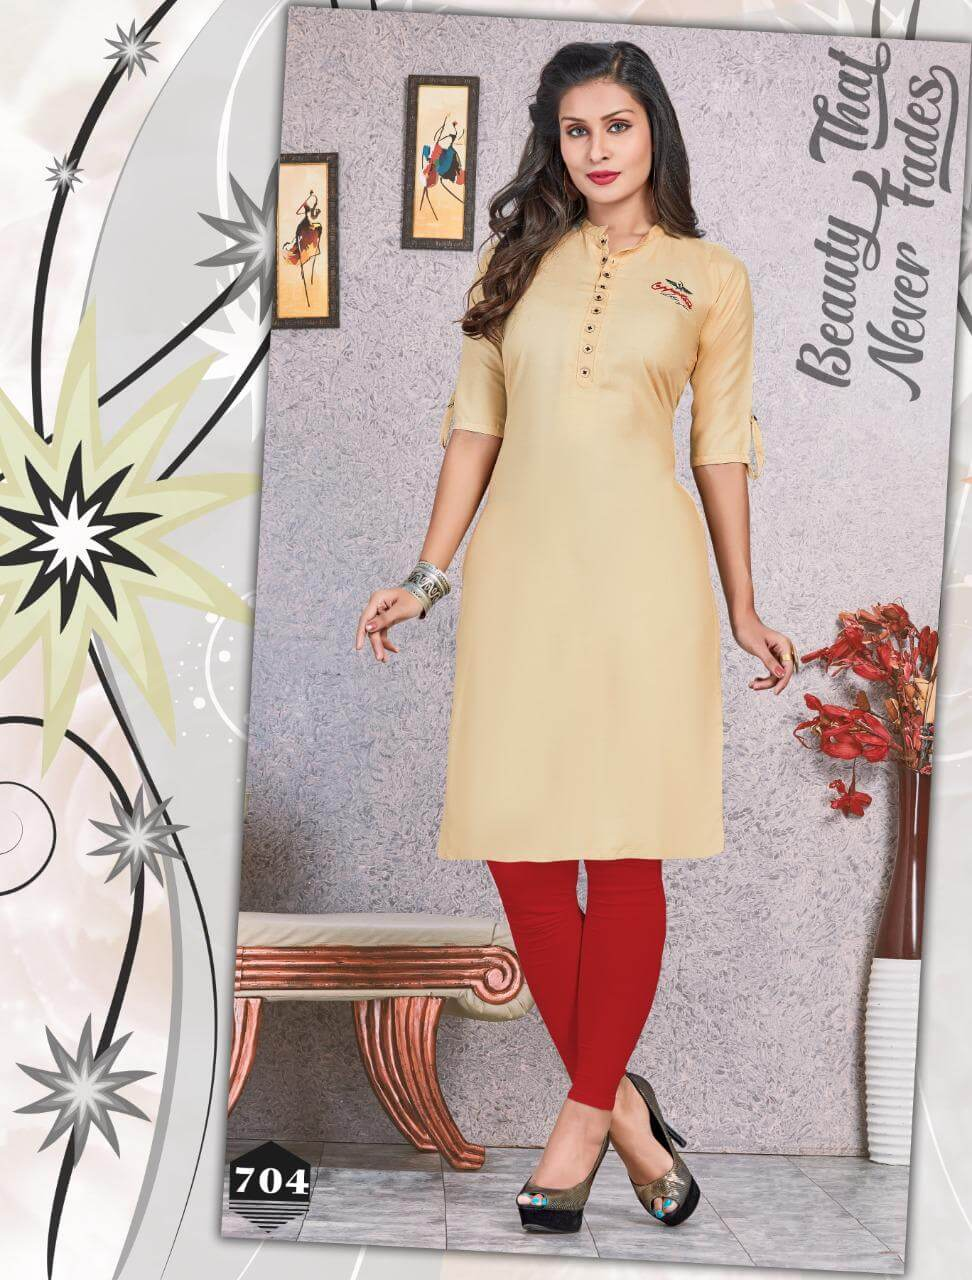 Trendy Falak 2 collection 7